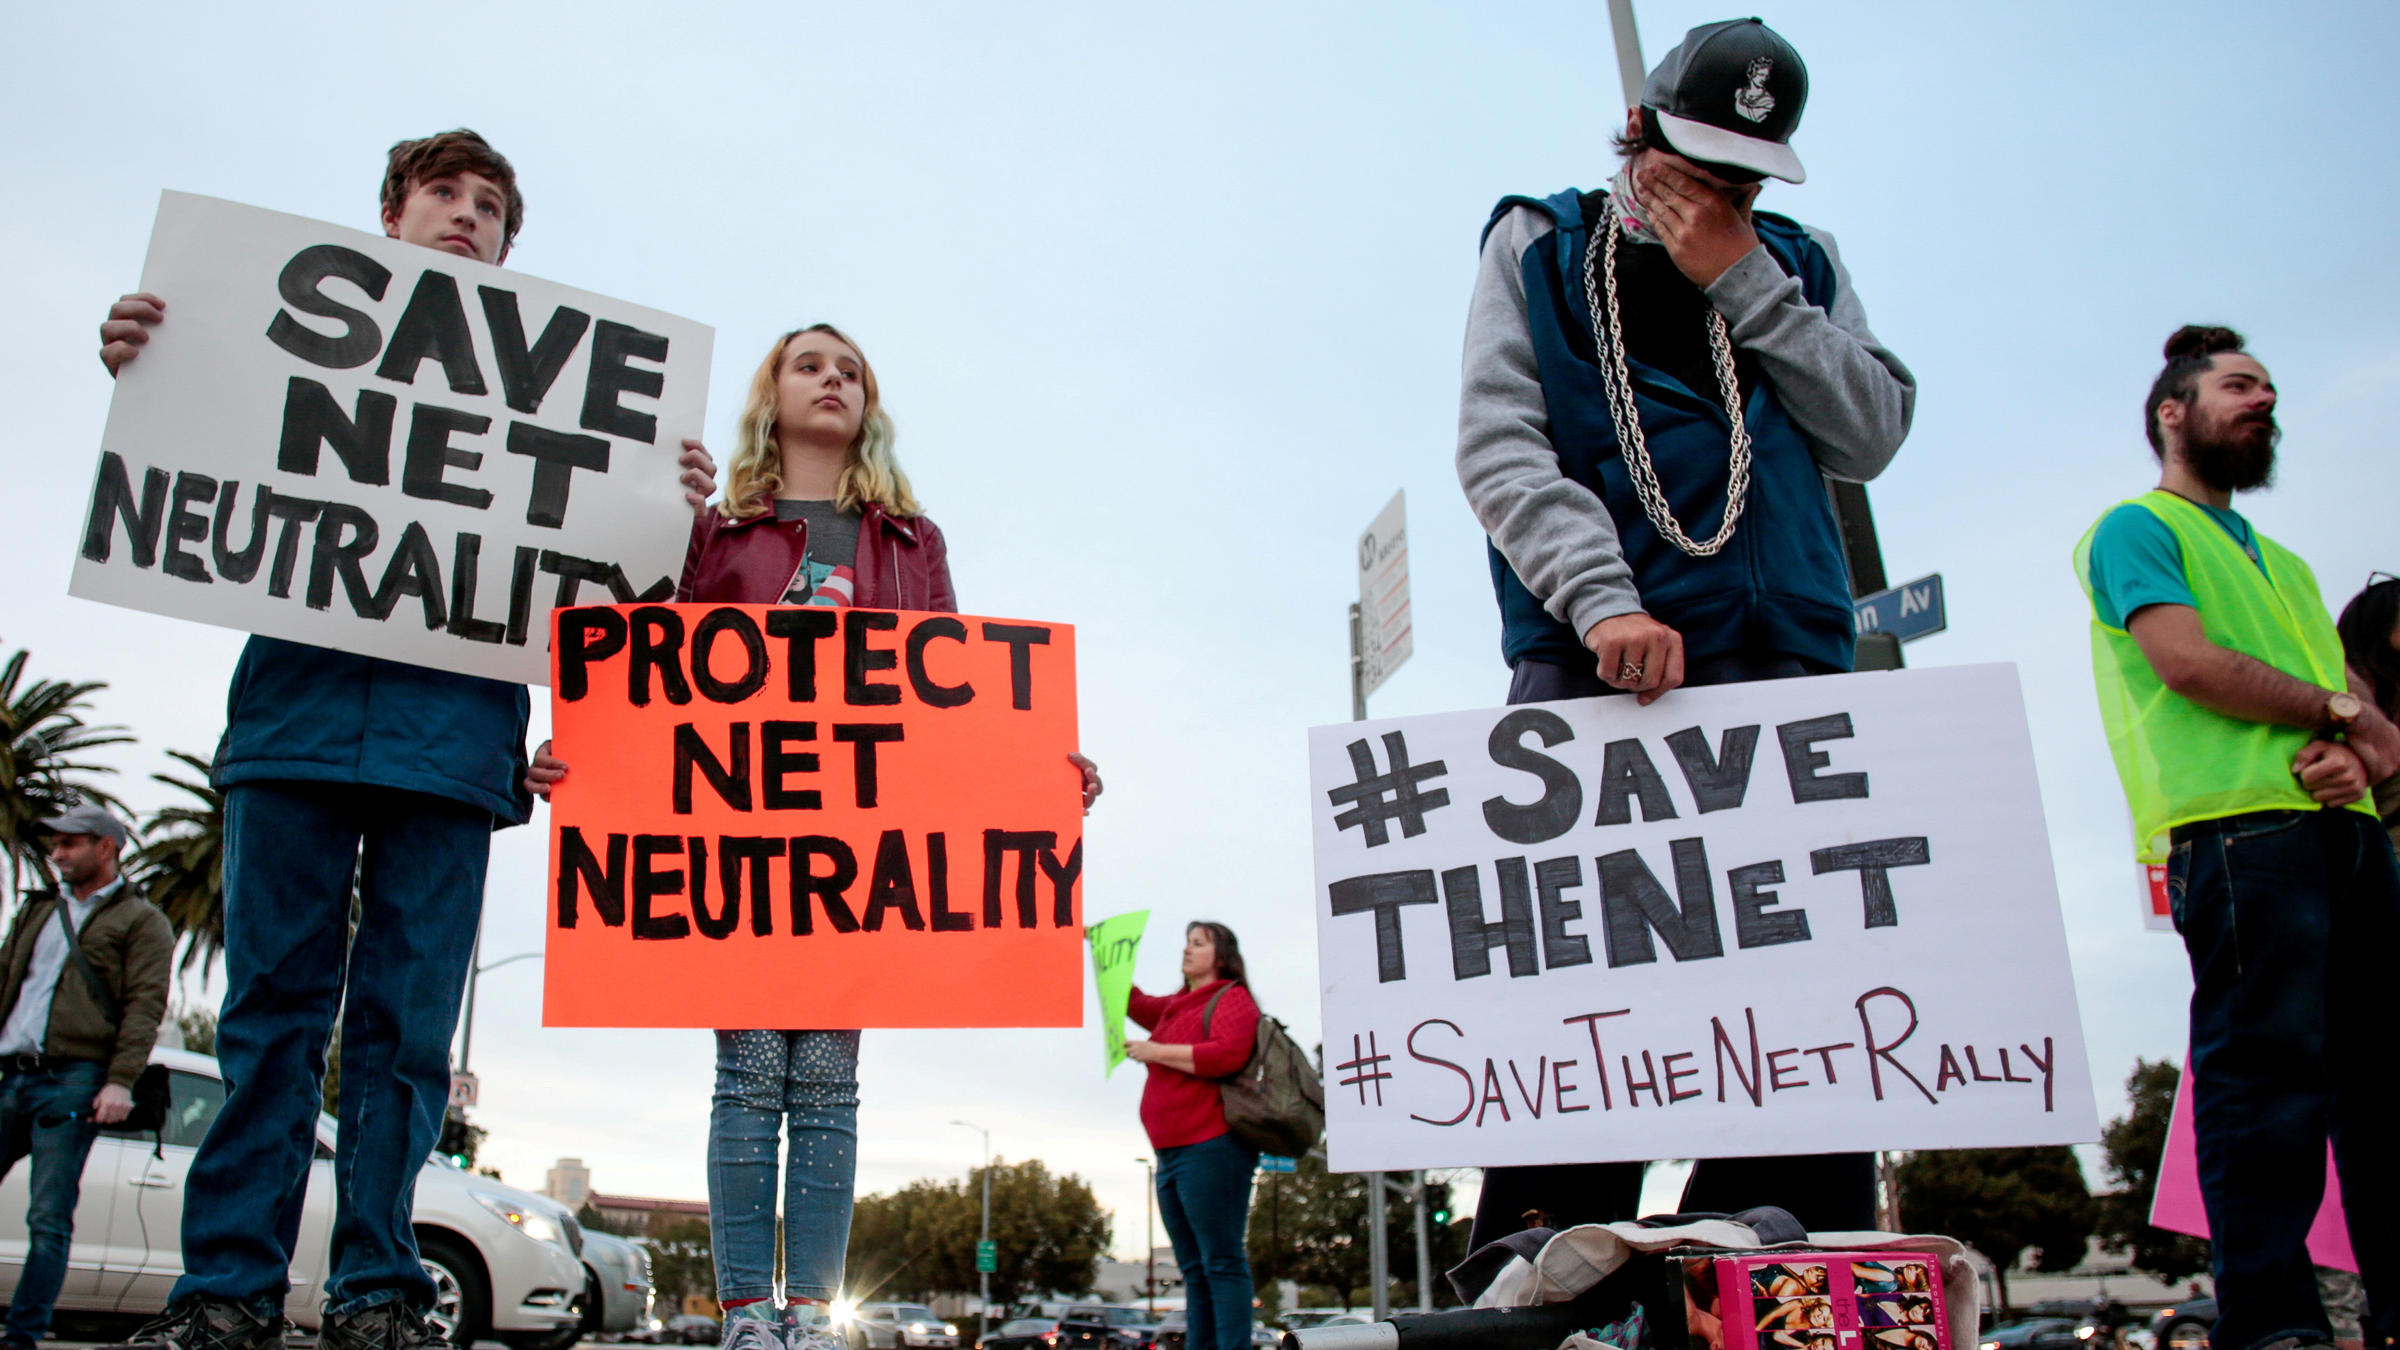 Senate to Vote on Repealing Changes to Net Neutrality Rules